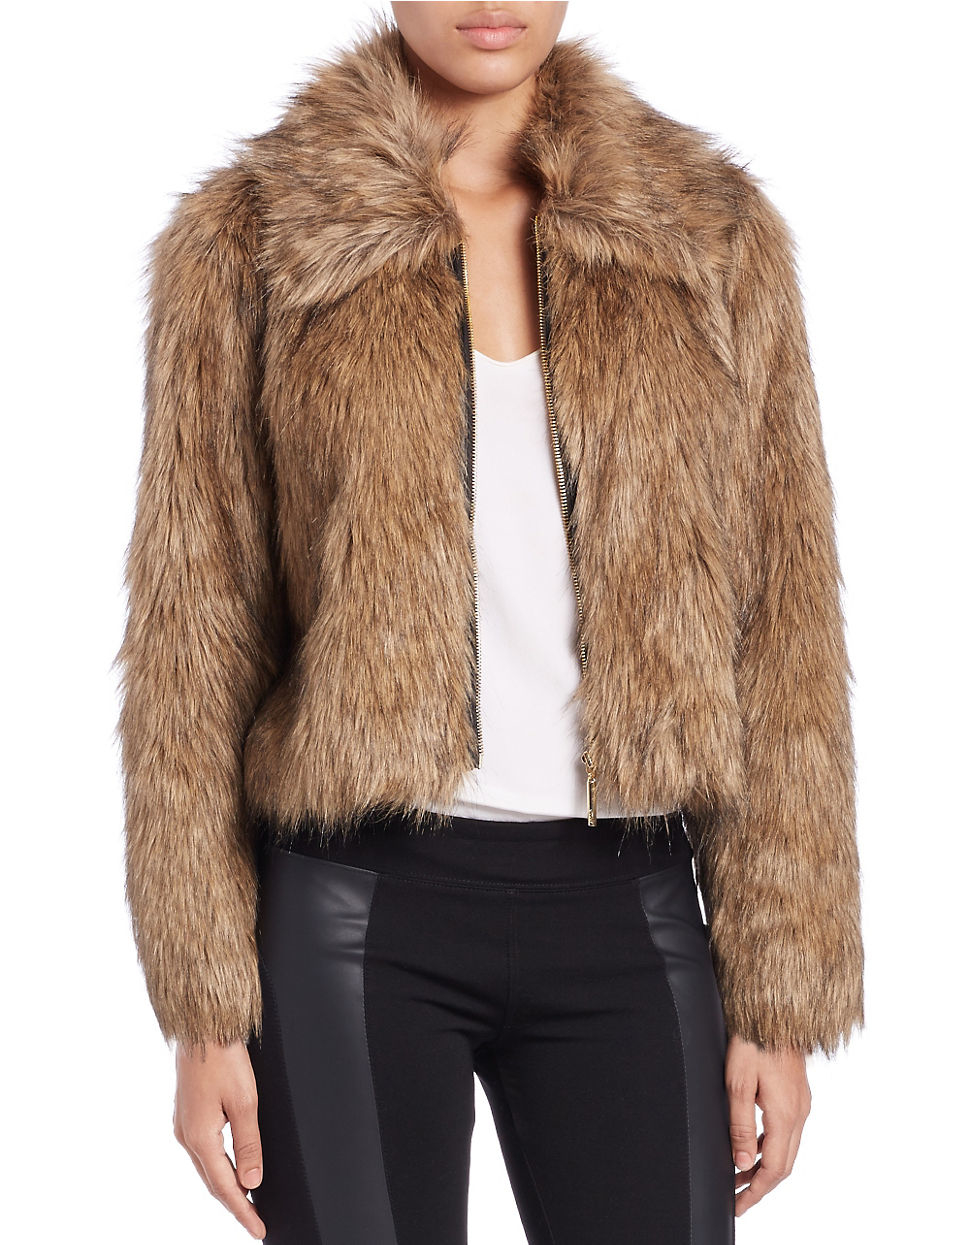 This deal is already going fast! Urbancode Crop Coat In Faux Fur - Green for $ Was $